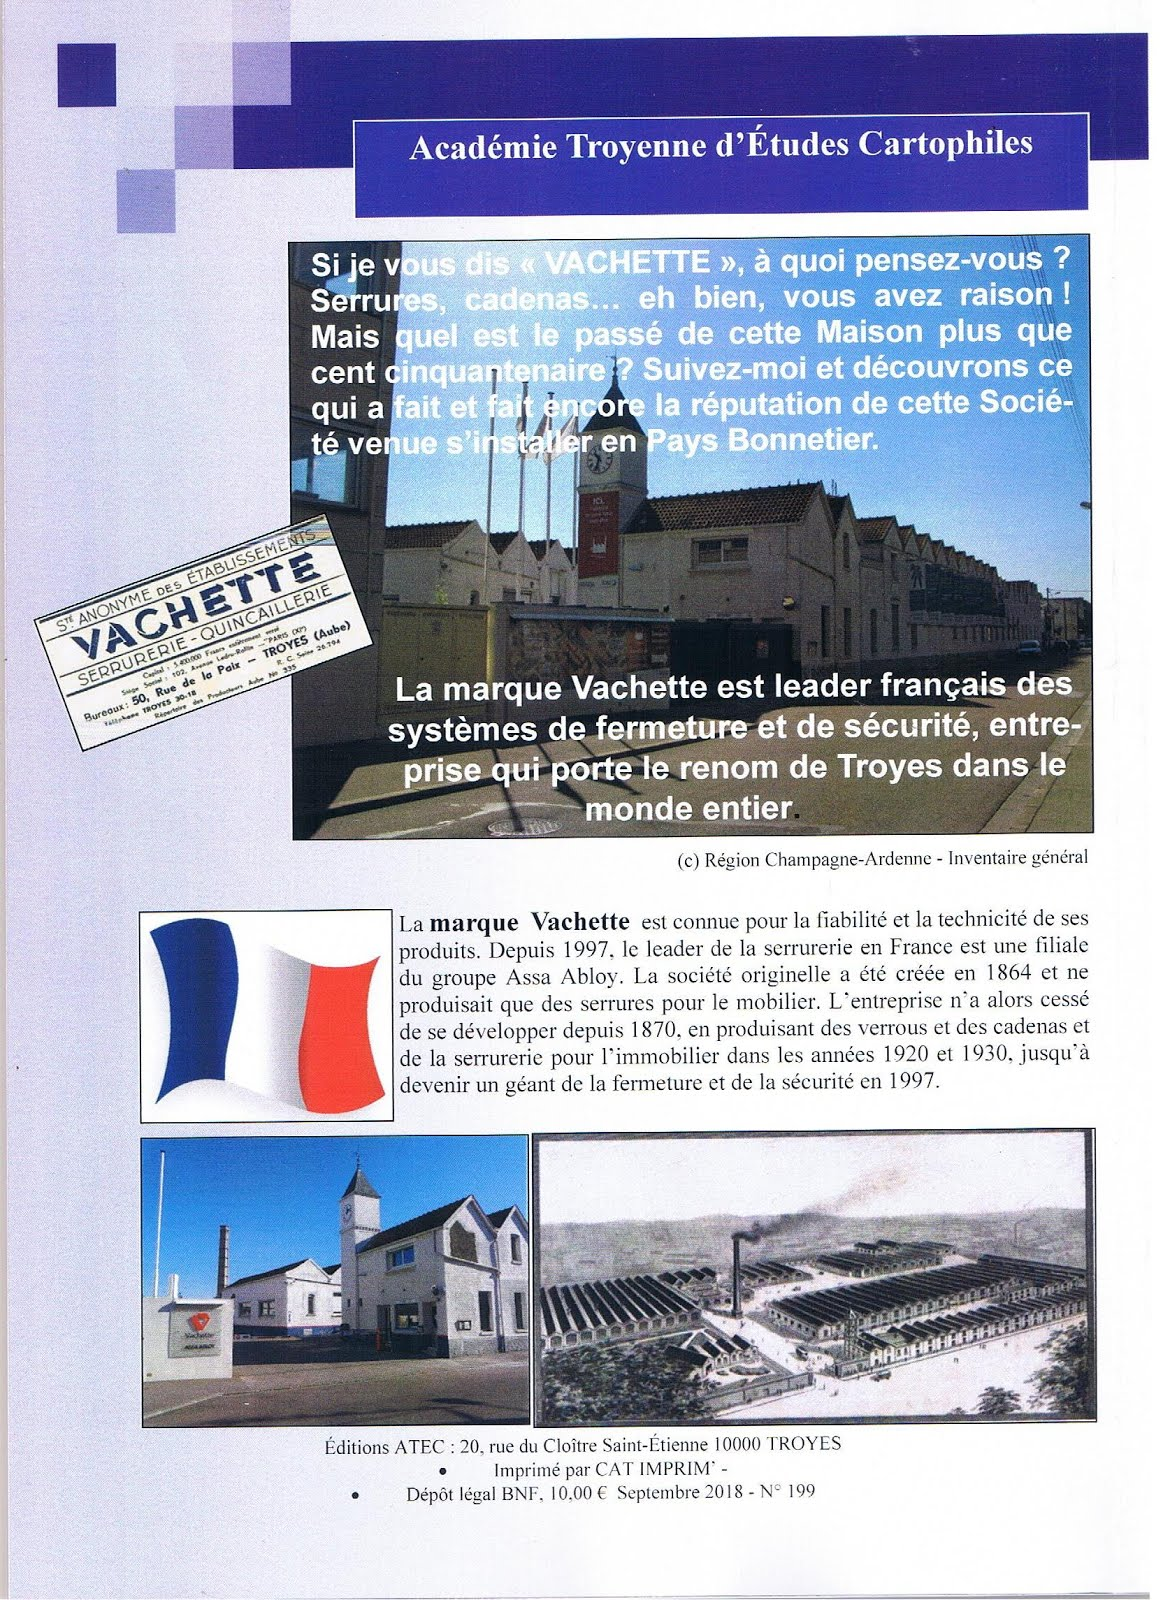 Couverture de la brochure